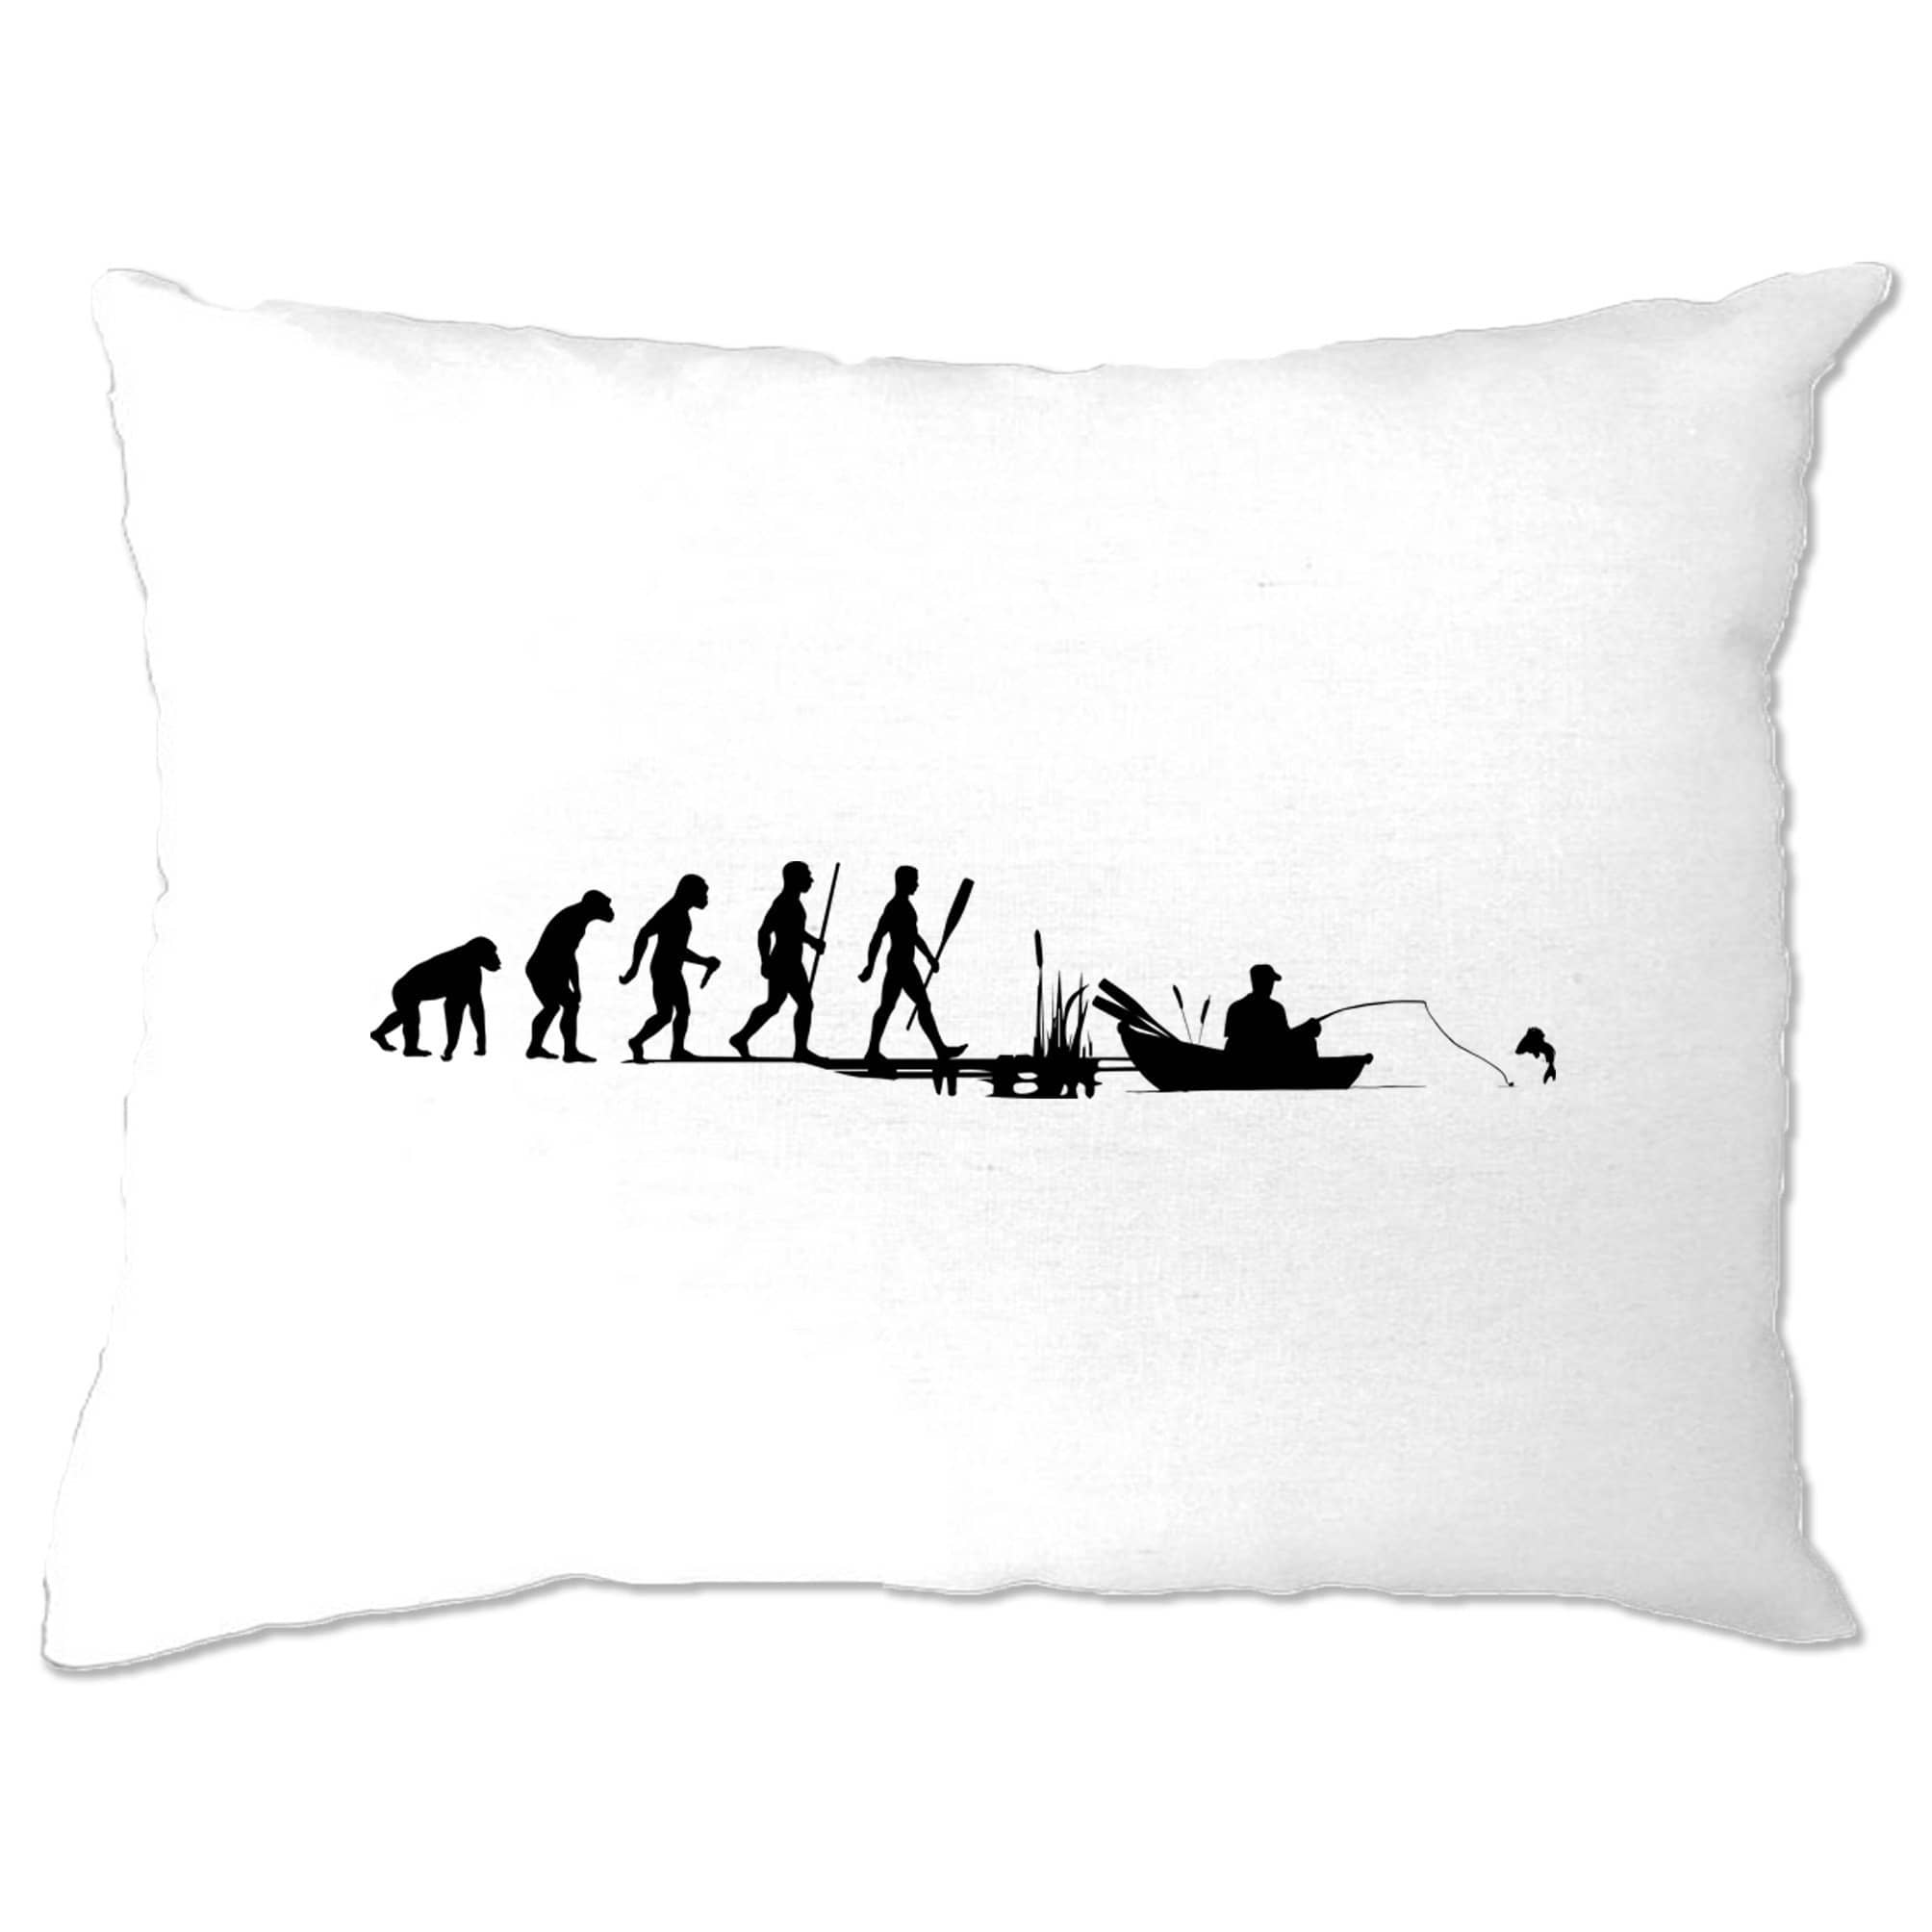 Fishing Pillow Case Evolution Of An Angler